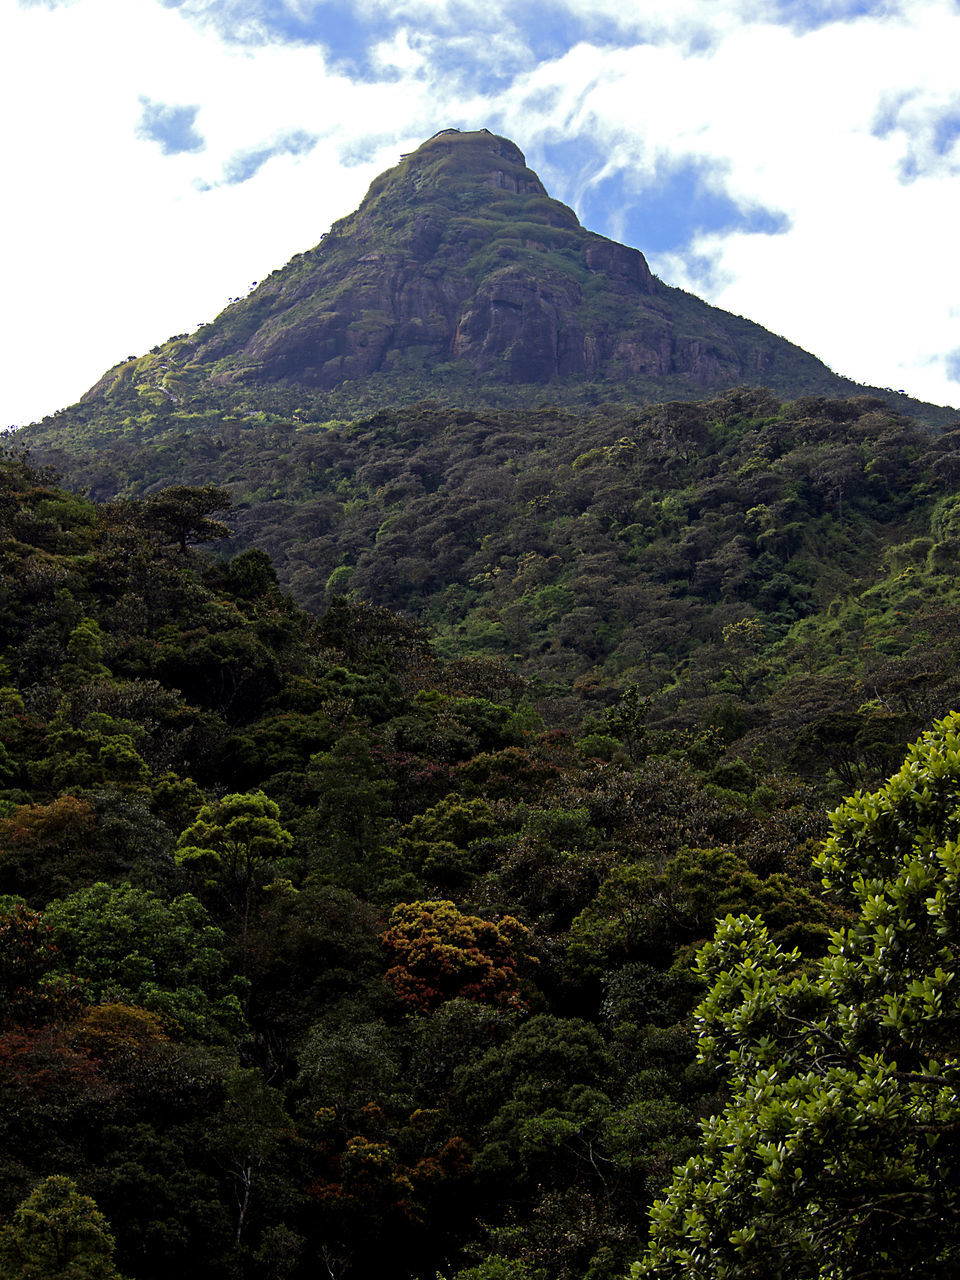 mountain, beauty in nature, nature, tranquility, day, scenics, tranquil scene, outdoors, sky, no people, tree, landscape